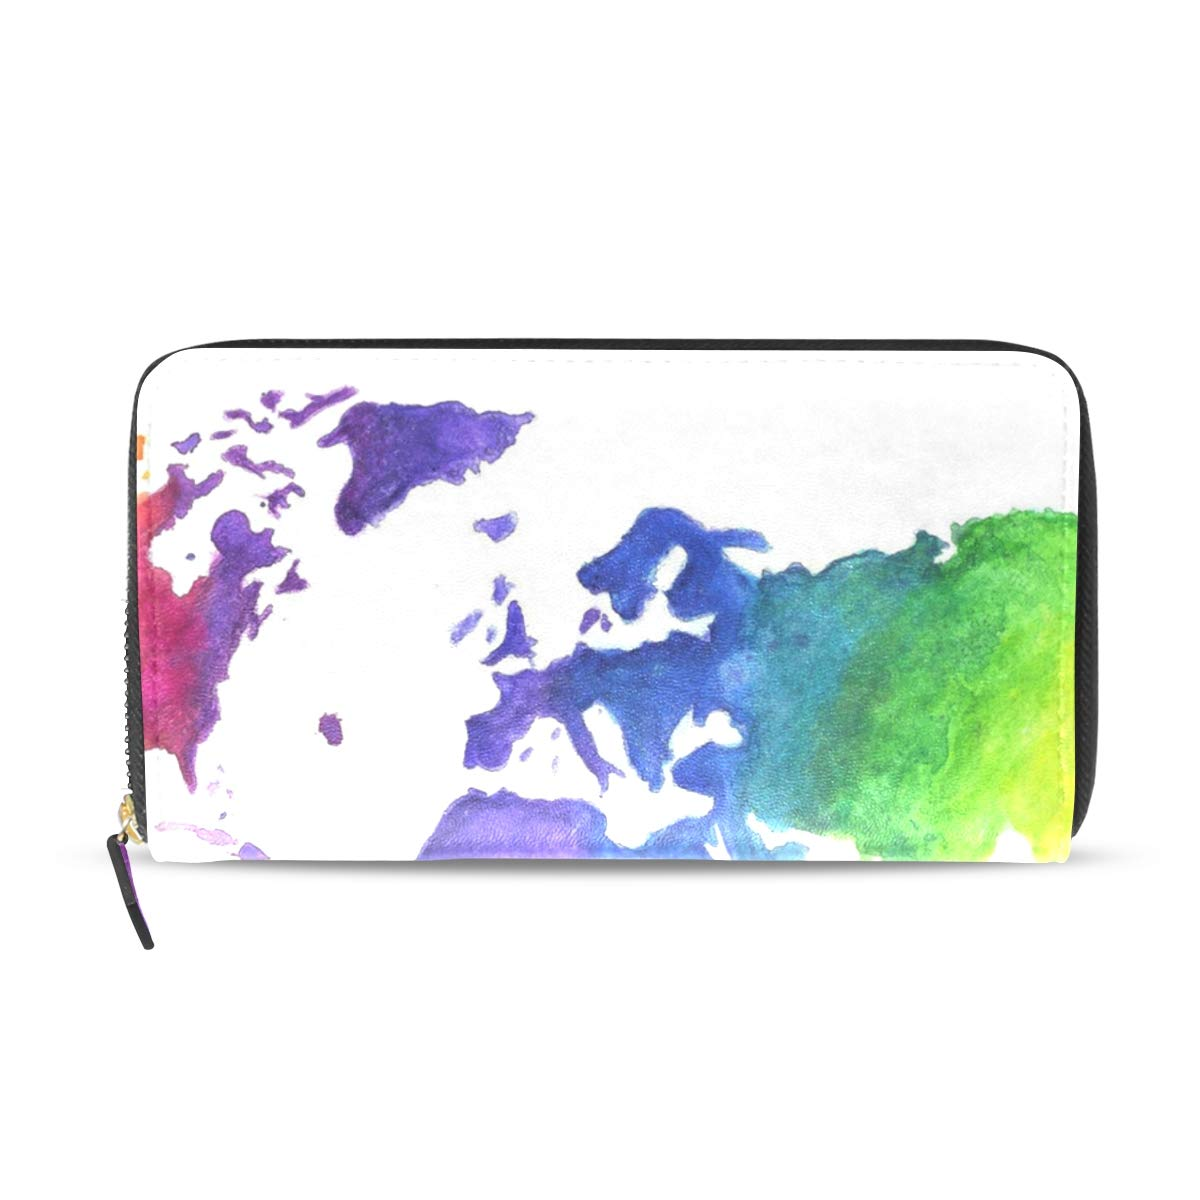 Womens Wallets Watercolor World Map Print Earth Rainbow Colors Leather Passport Wallet Coin Purse Girls Handbags